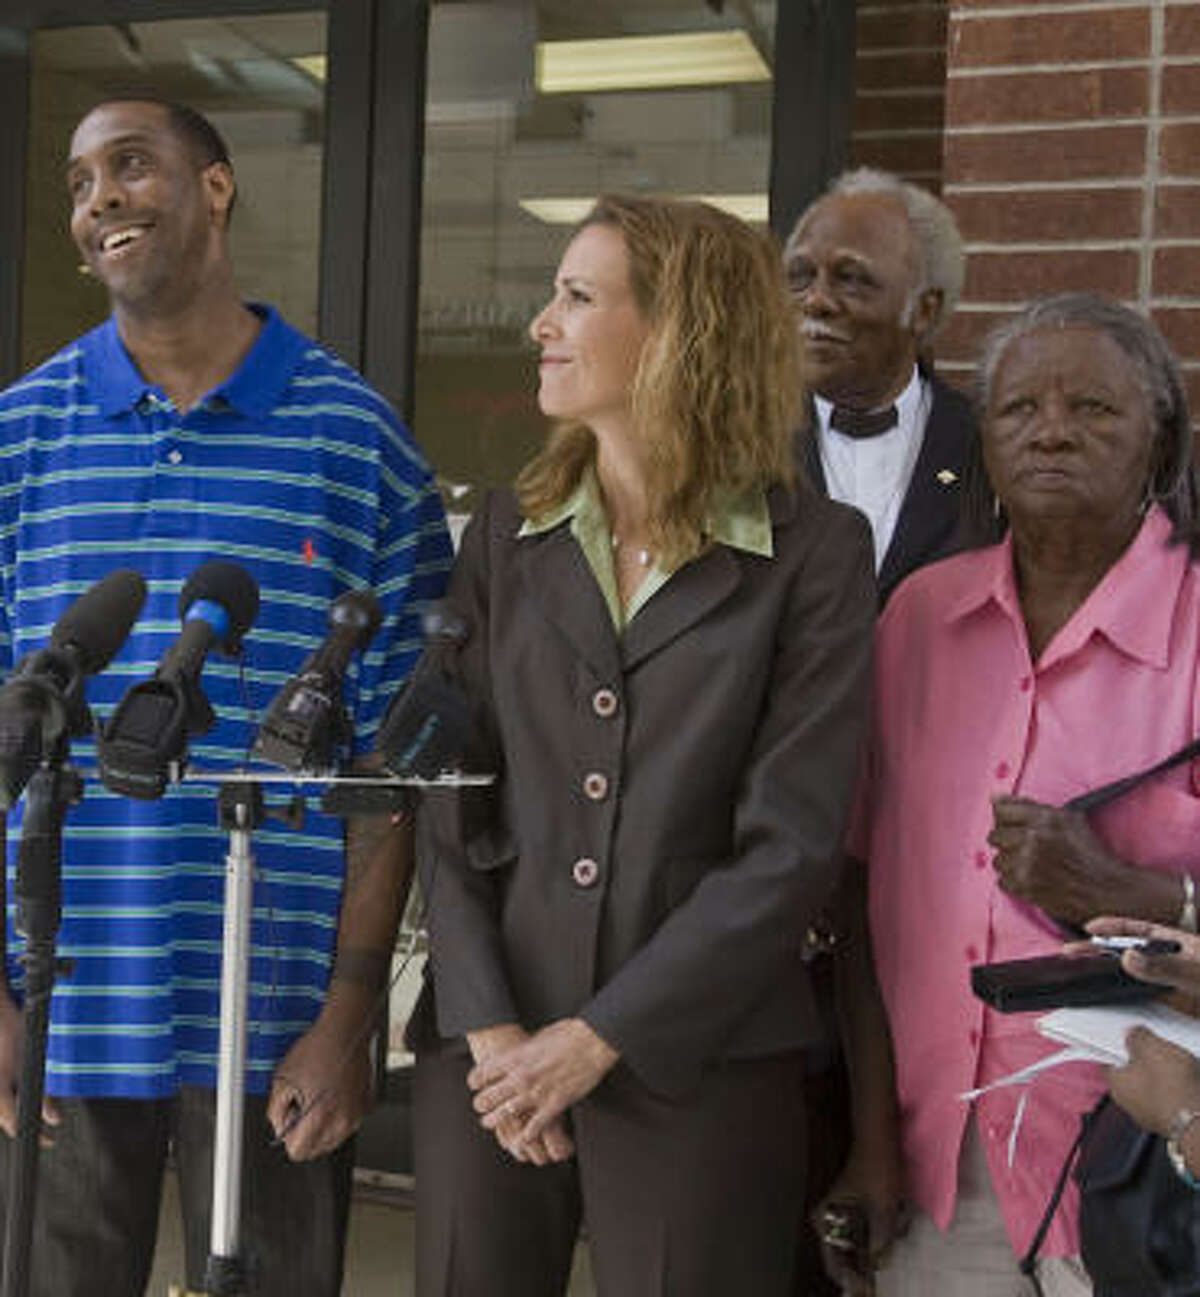 Allen Wayne Porter, 39, who spent nearly two decades in prison for a crime he didn't commit, is all smiles Friday as he is surrounded by family members and his lawyer, Casey Garrett.